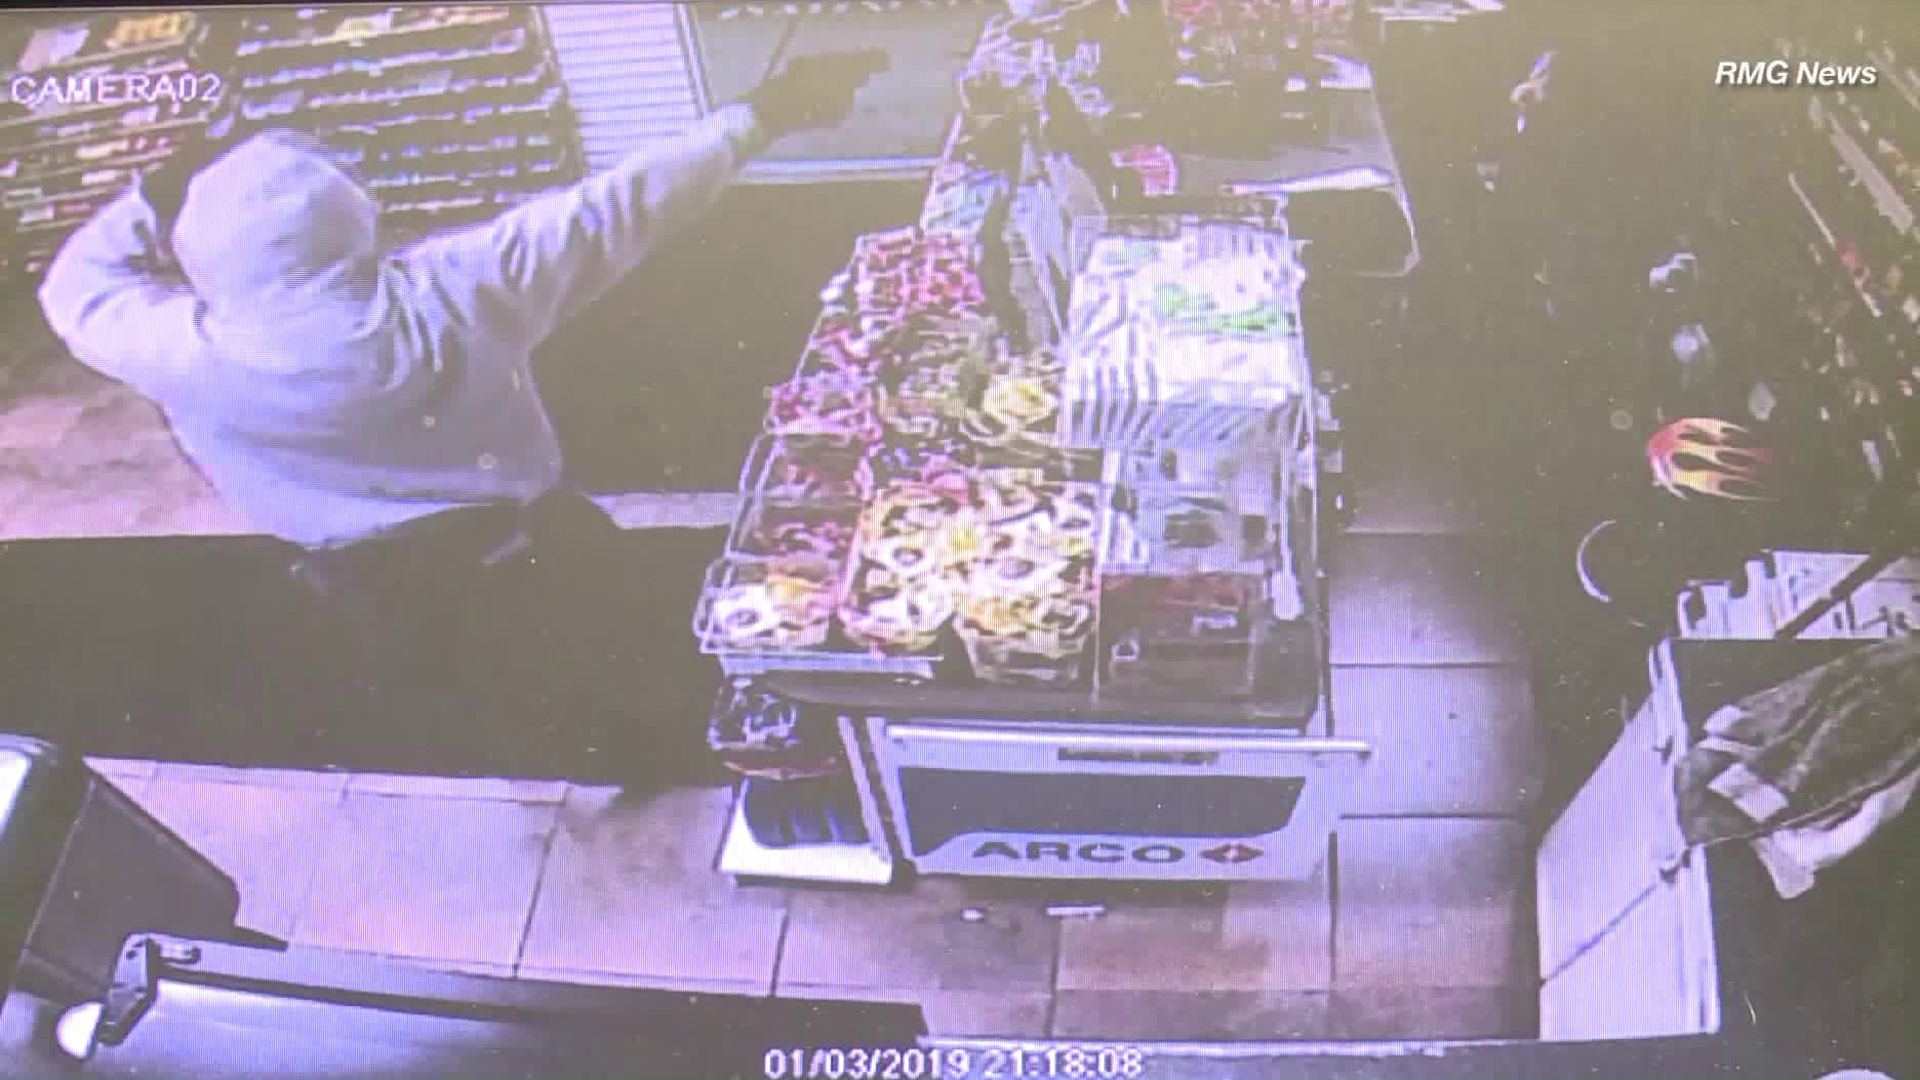 A surveillance image shows a gunman holding up an Arco station in Carson on Jan. 3, 2018.